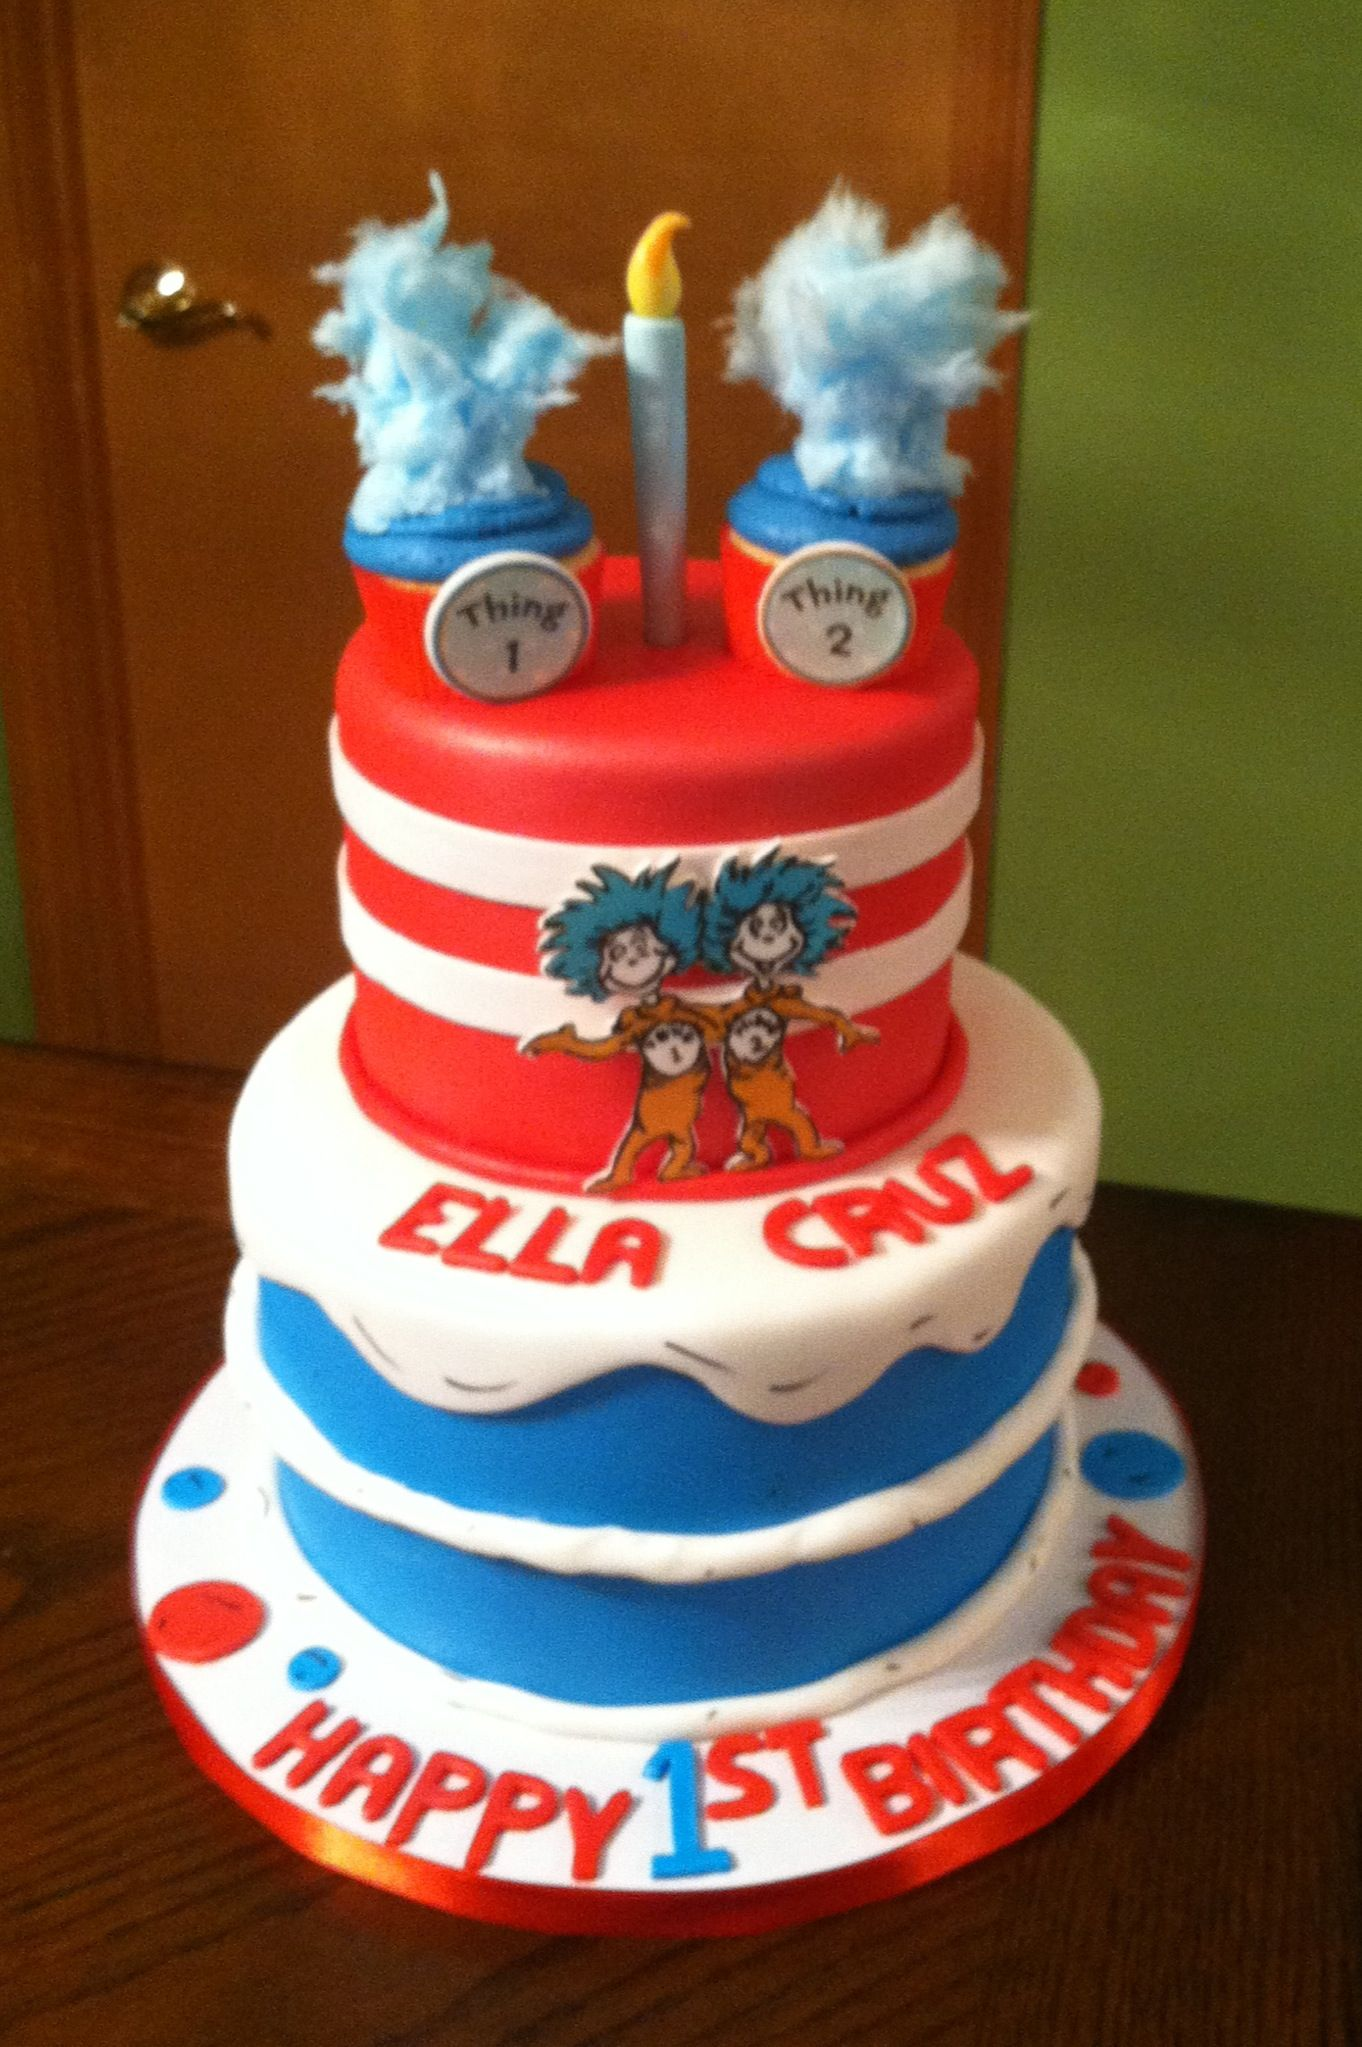 Thing 1 Thing 2 Cake Cakes Ive Done Pinterest Cake Thing 1